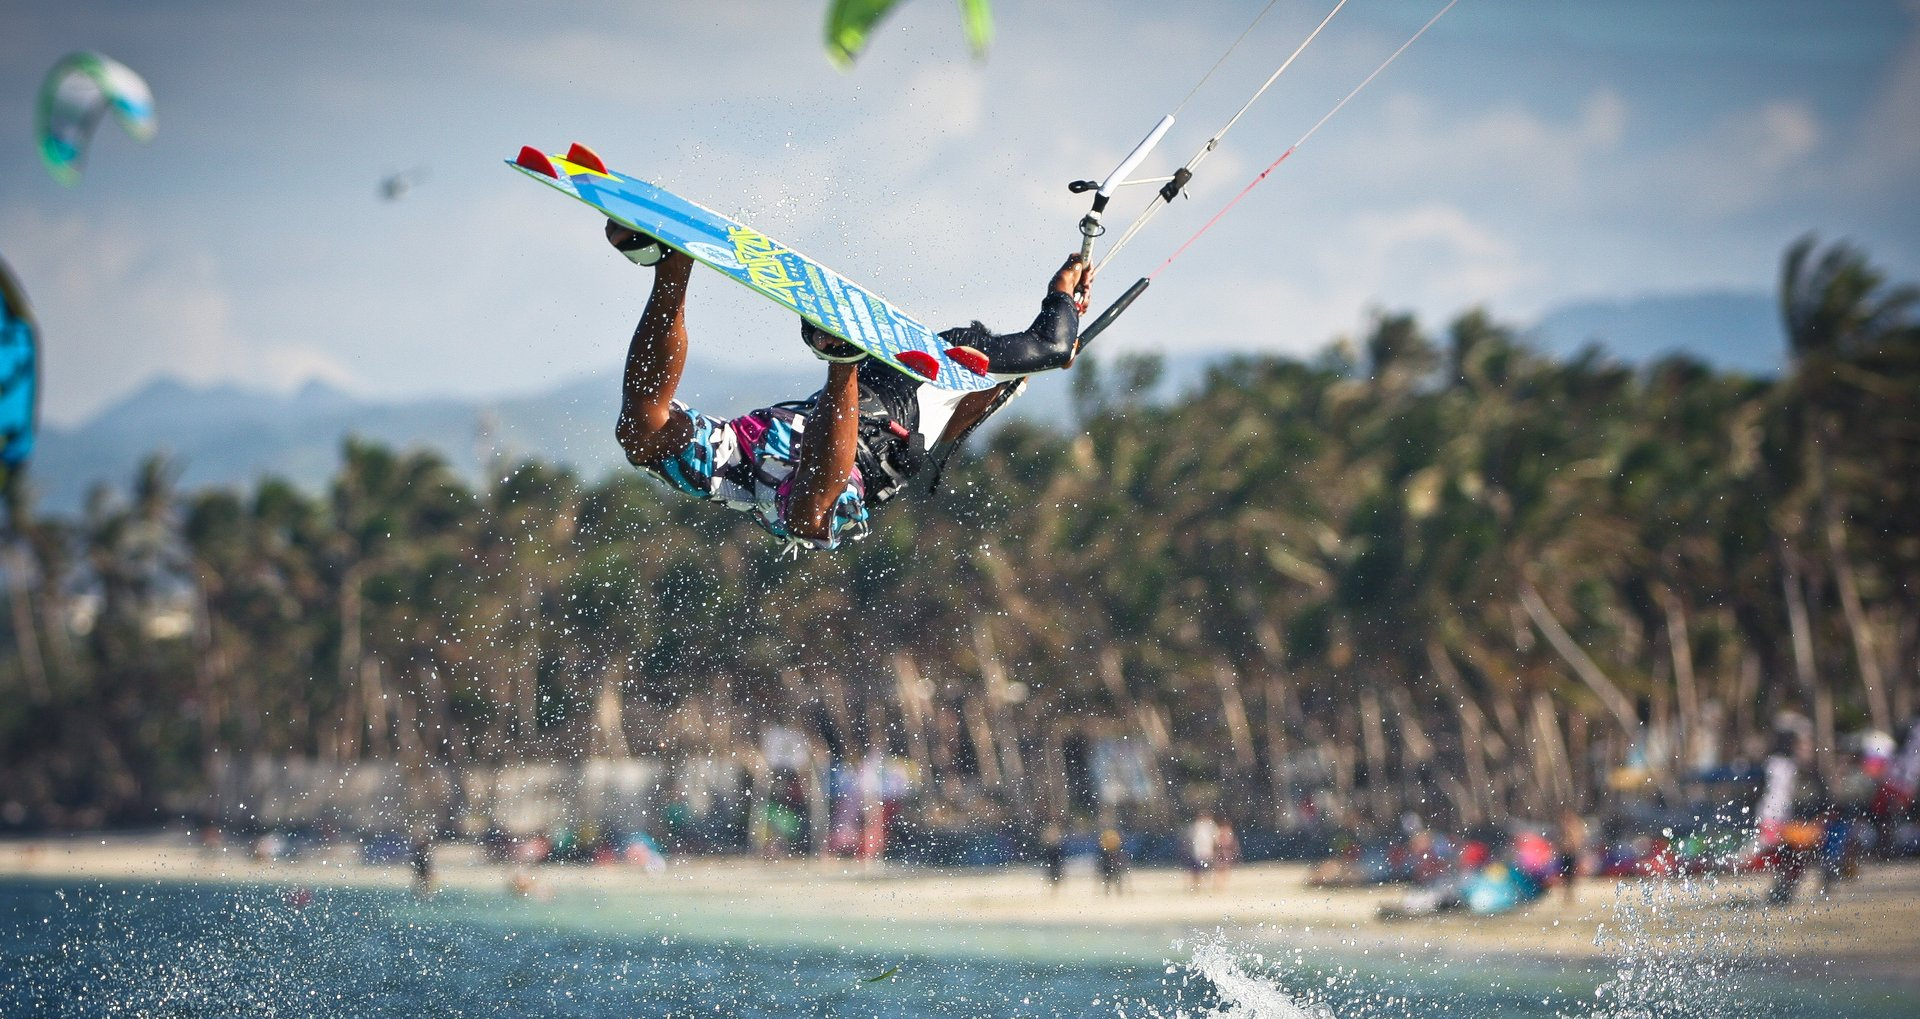 Kitesurfing on Boracay in Philippines 2019 - Best Time